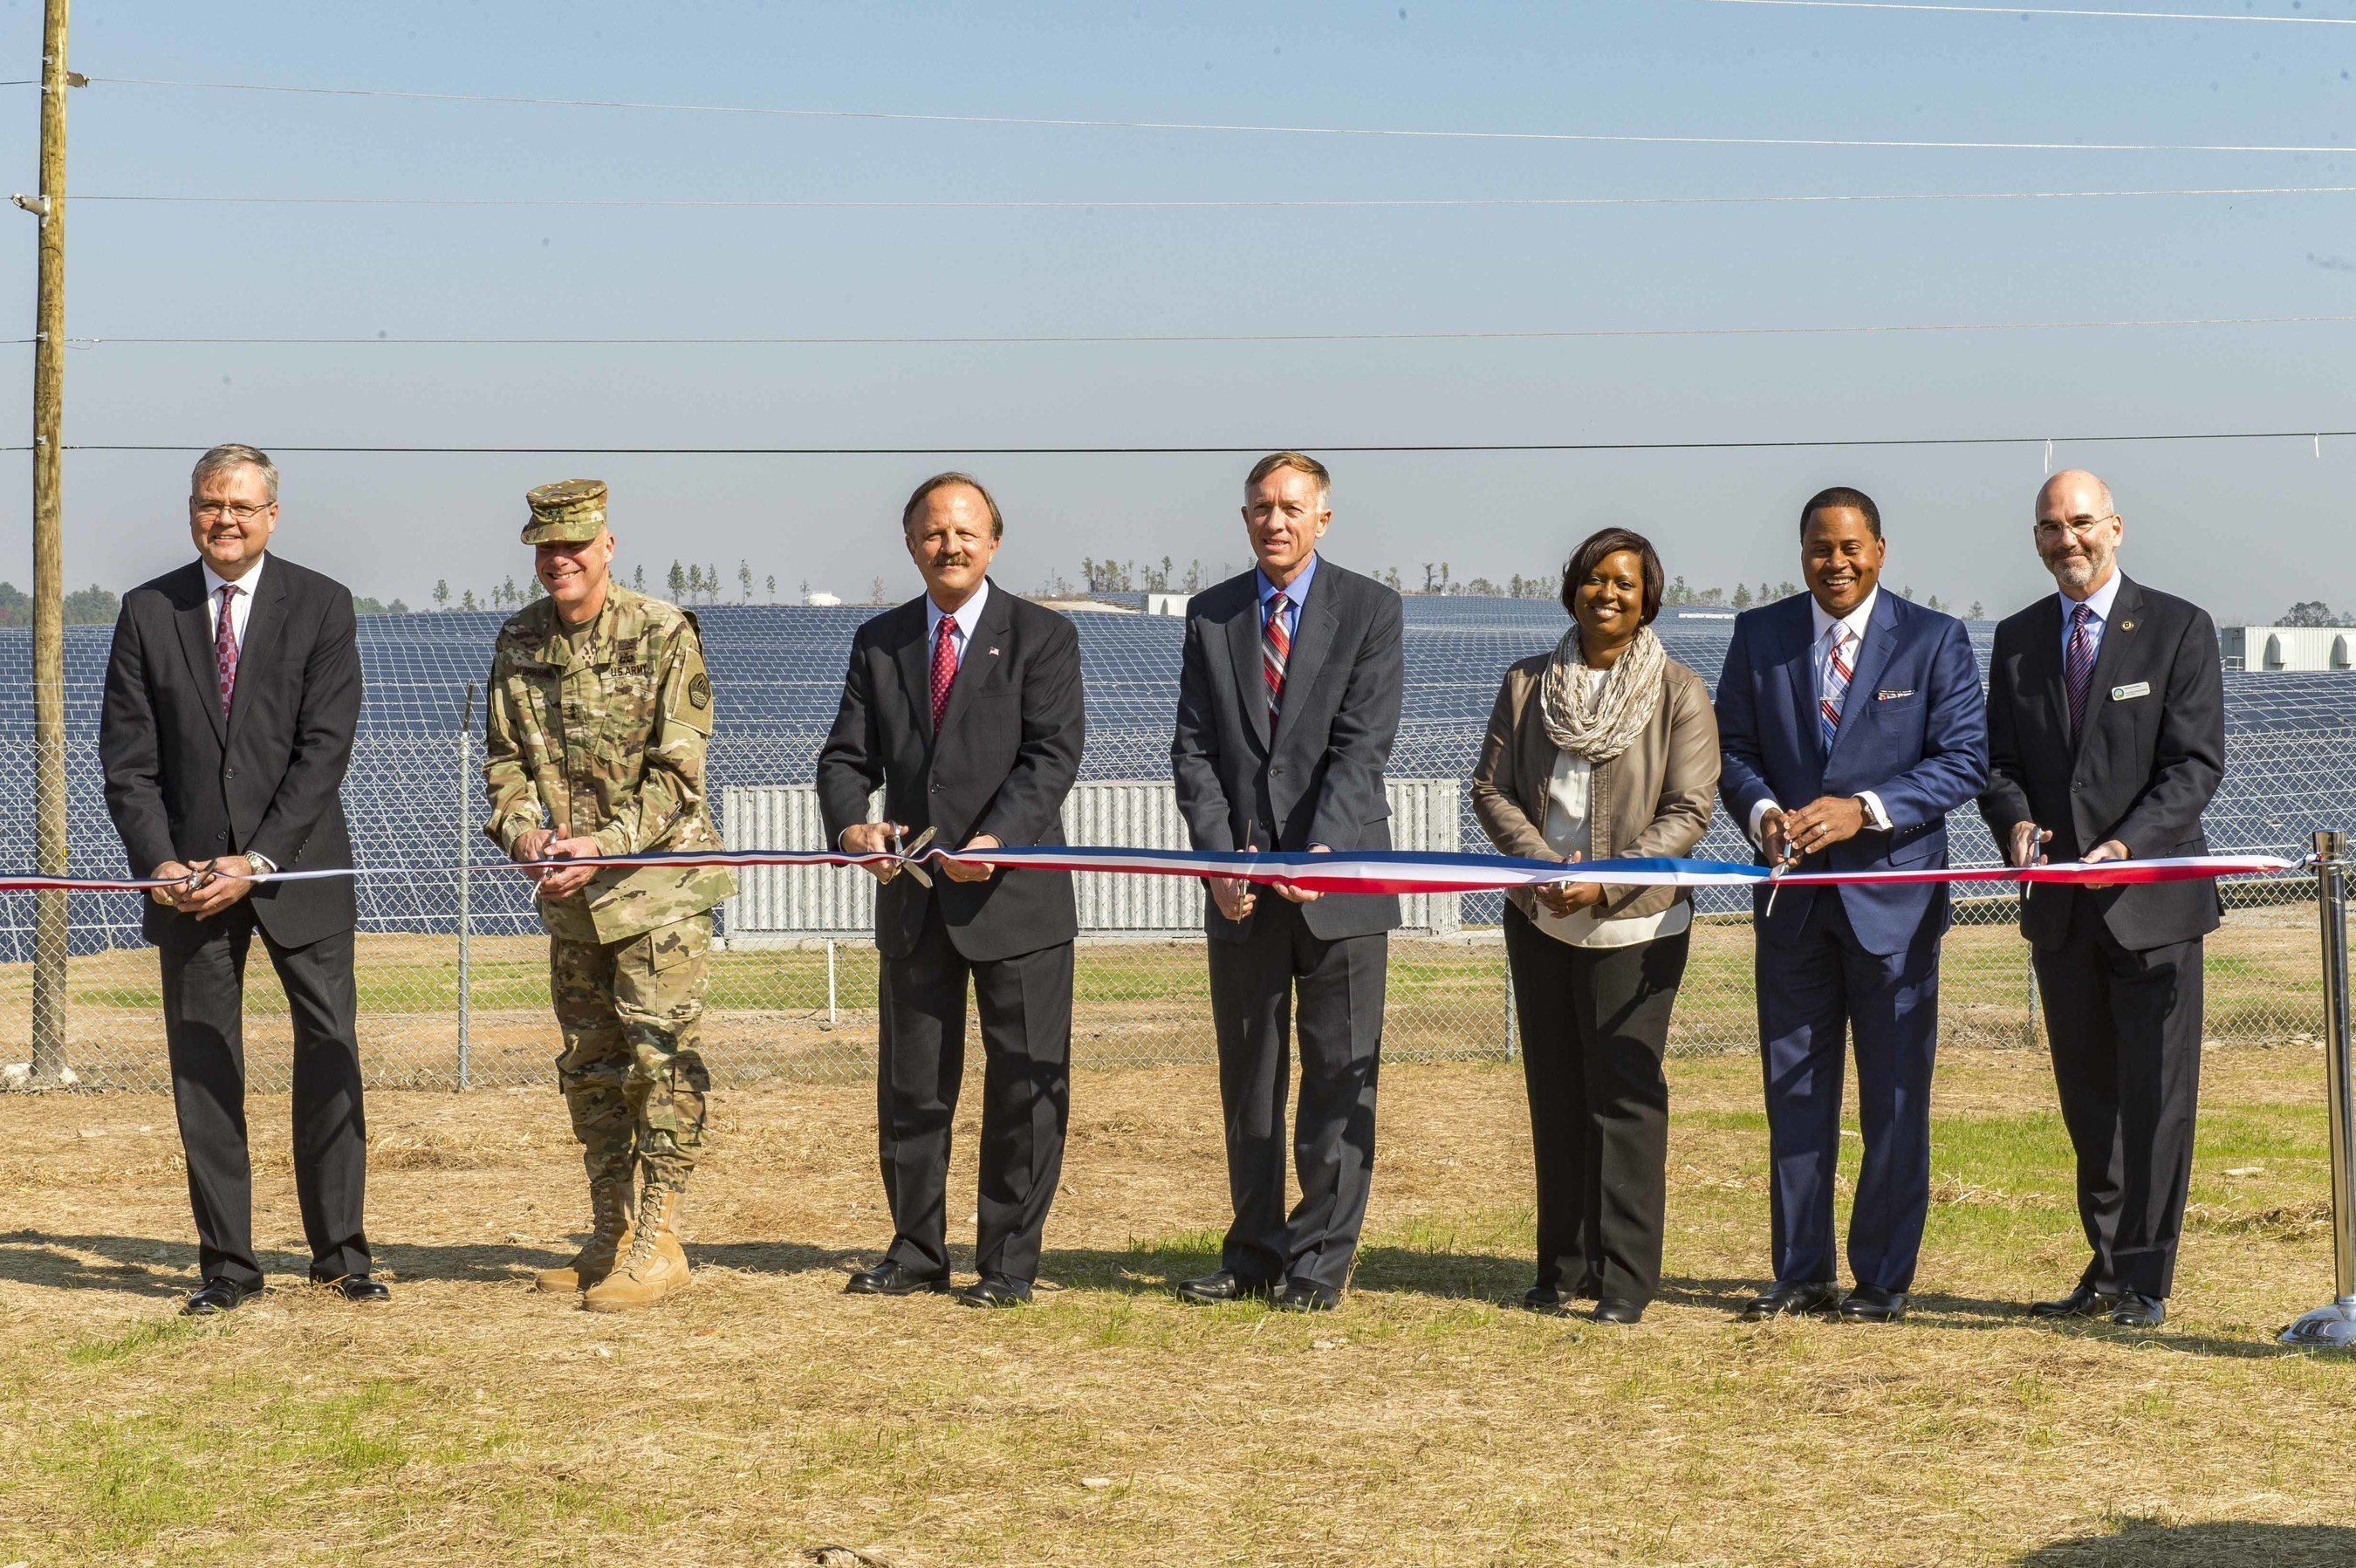 Leaders from Georgia Power and the U.S. Army joined elected officials, community leaders and other dignitaries at Fort Gordon near Augusta, Ga. on Nov. 16, 2016 to dedicate a new 30 megawatt (MW) on-base solar facility. The project is the third completed by Georgia Power in collaboration with the military, joining similar on-base solar facilities recently unveiled with the U.S. Army at Fort Benning and the Department of the Navy (DON) at Naval Submarine Base (SUBASE) Kings Bay.